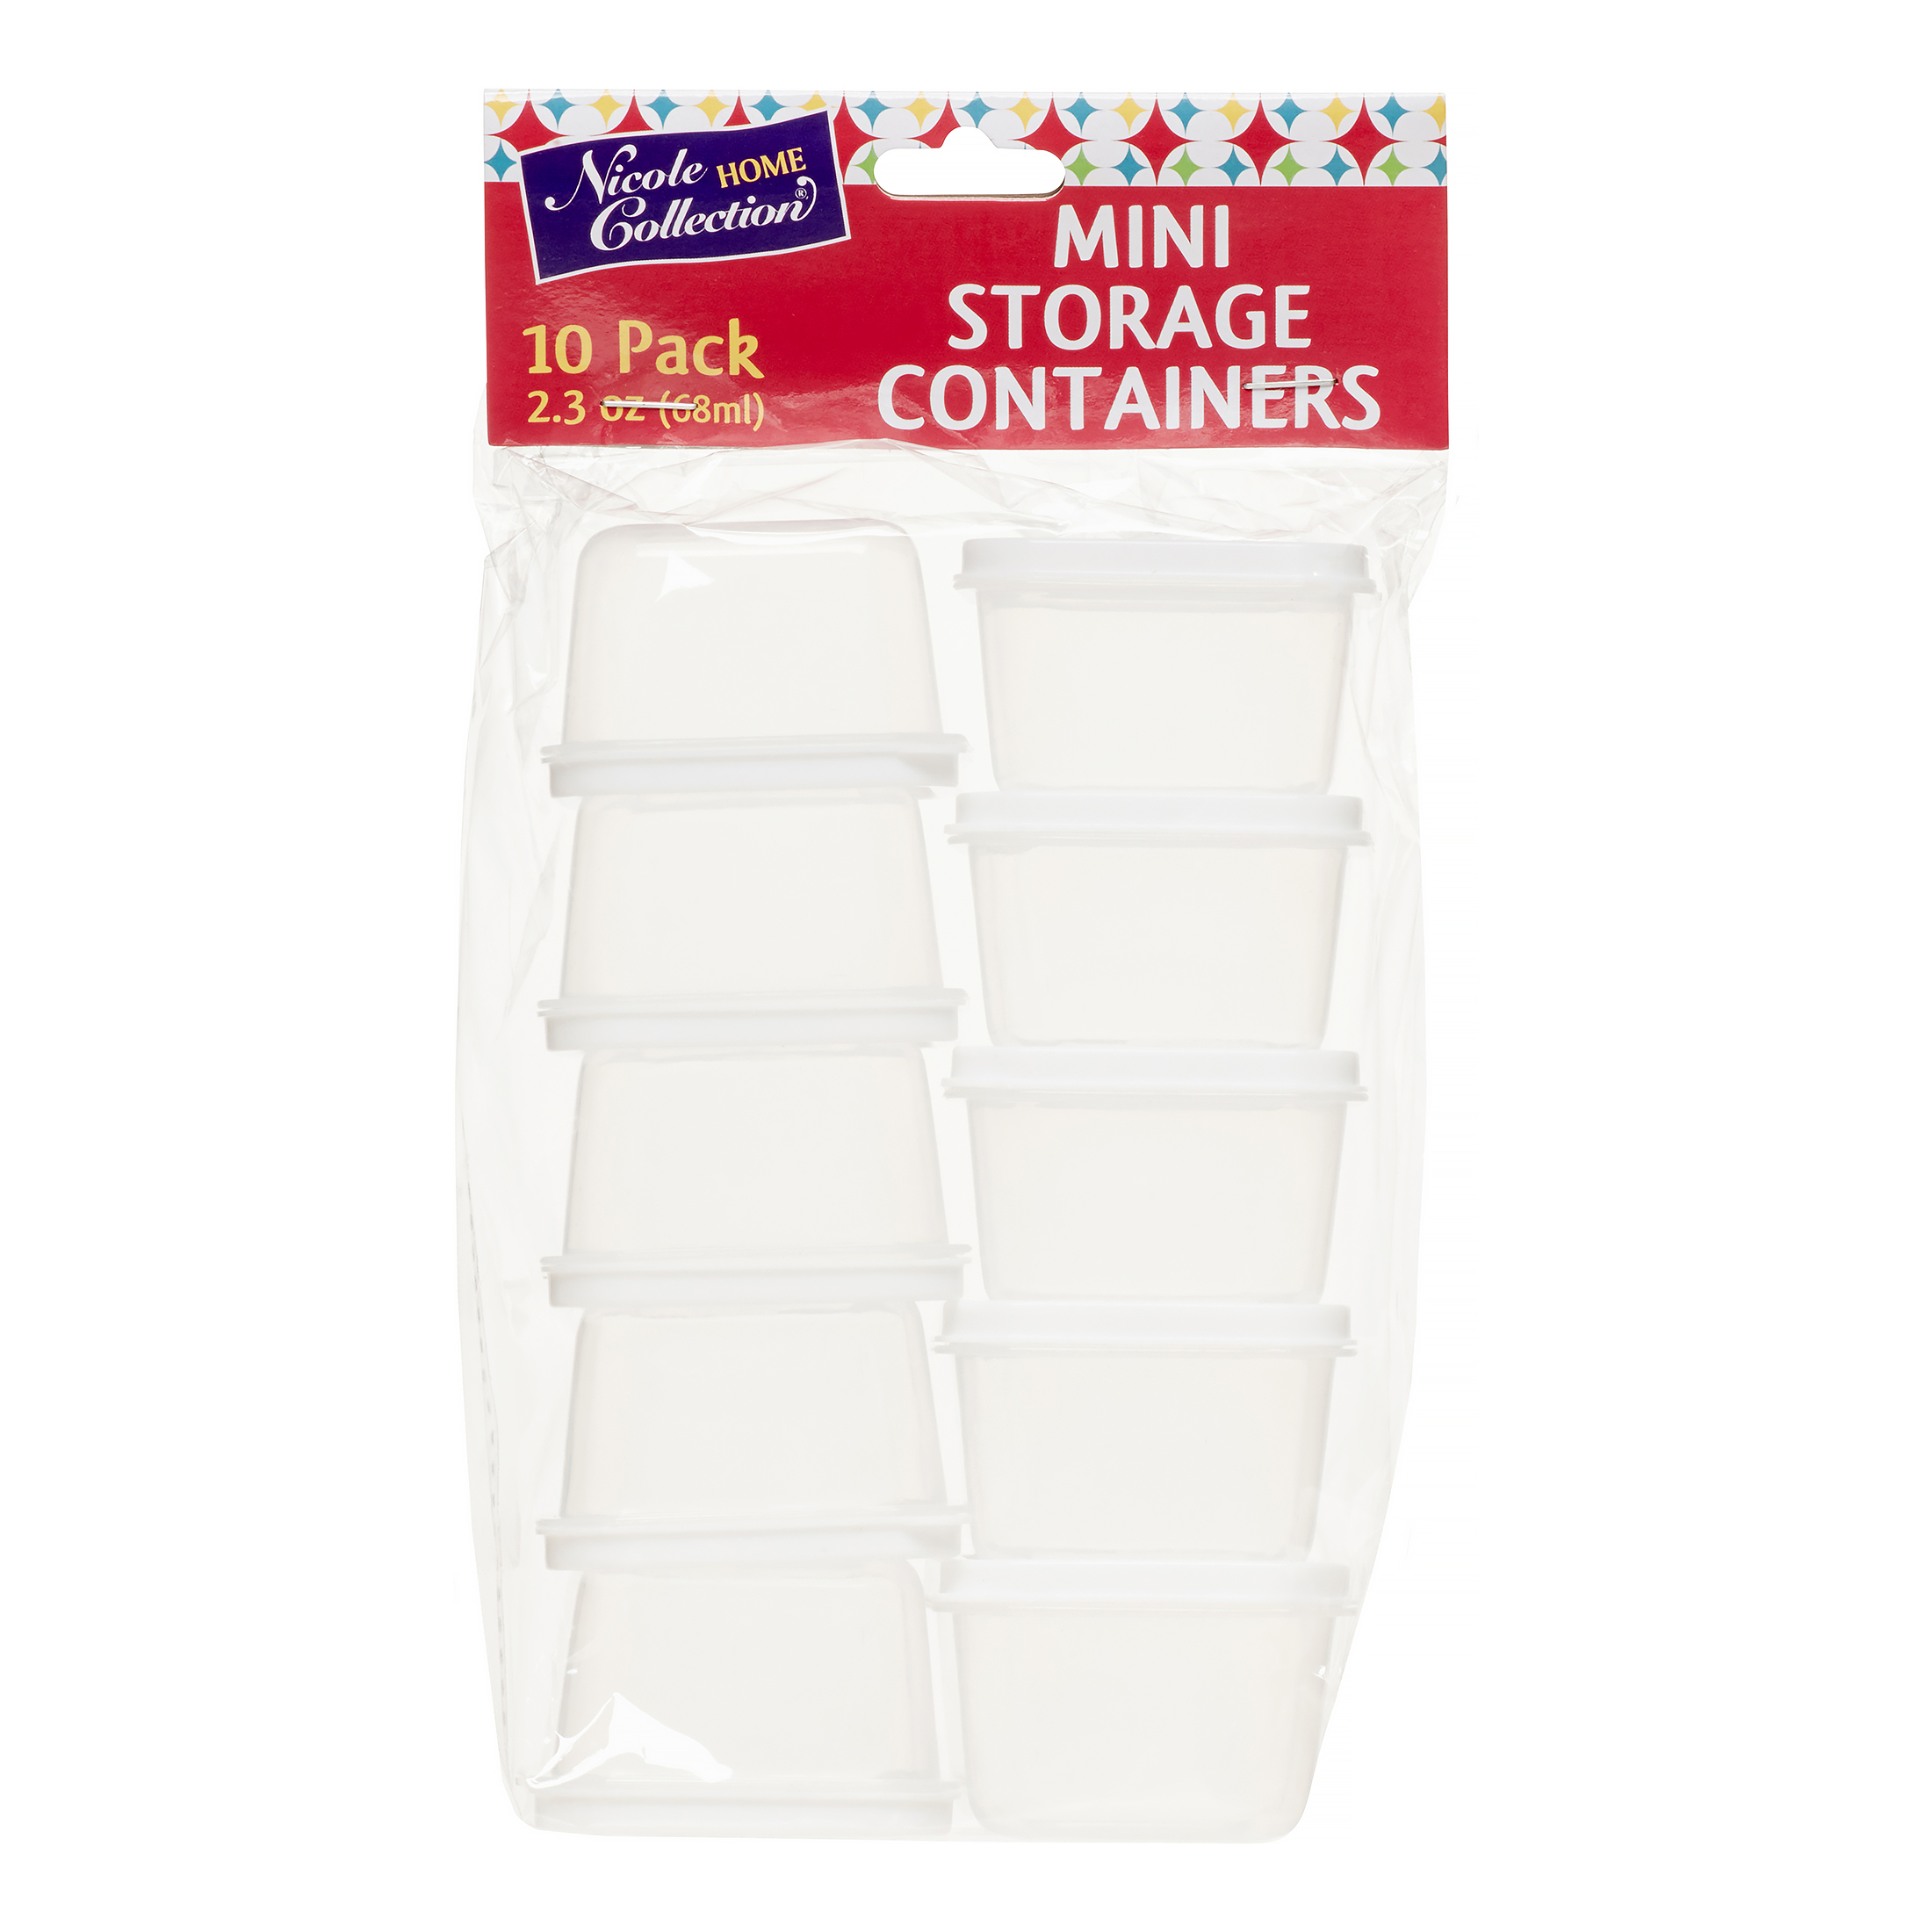 KingZak Nicole Home Collection Mini Containers with Lids, Rectangular, 2.3 Oz, White, 10 Ct